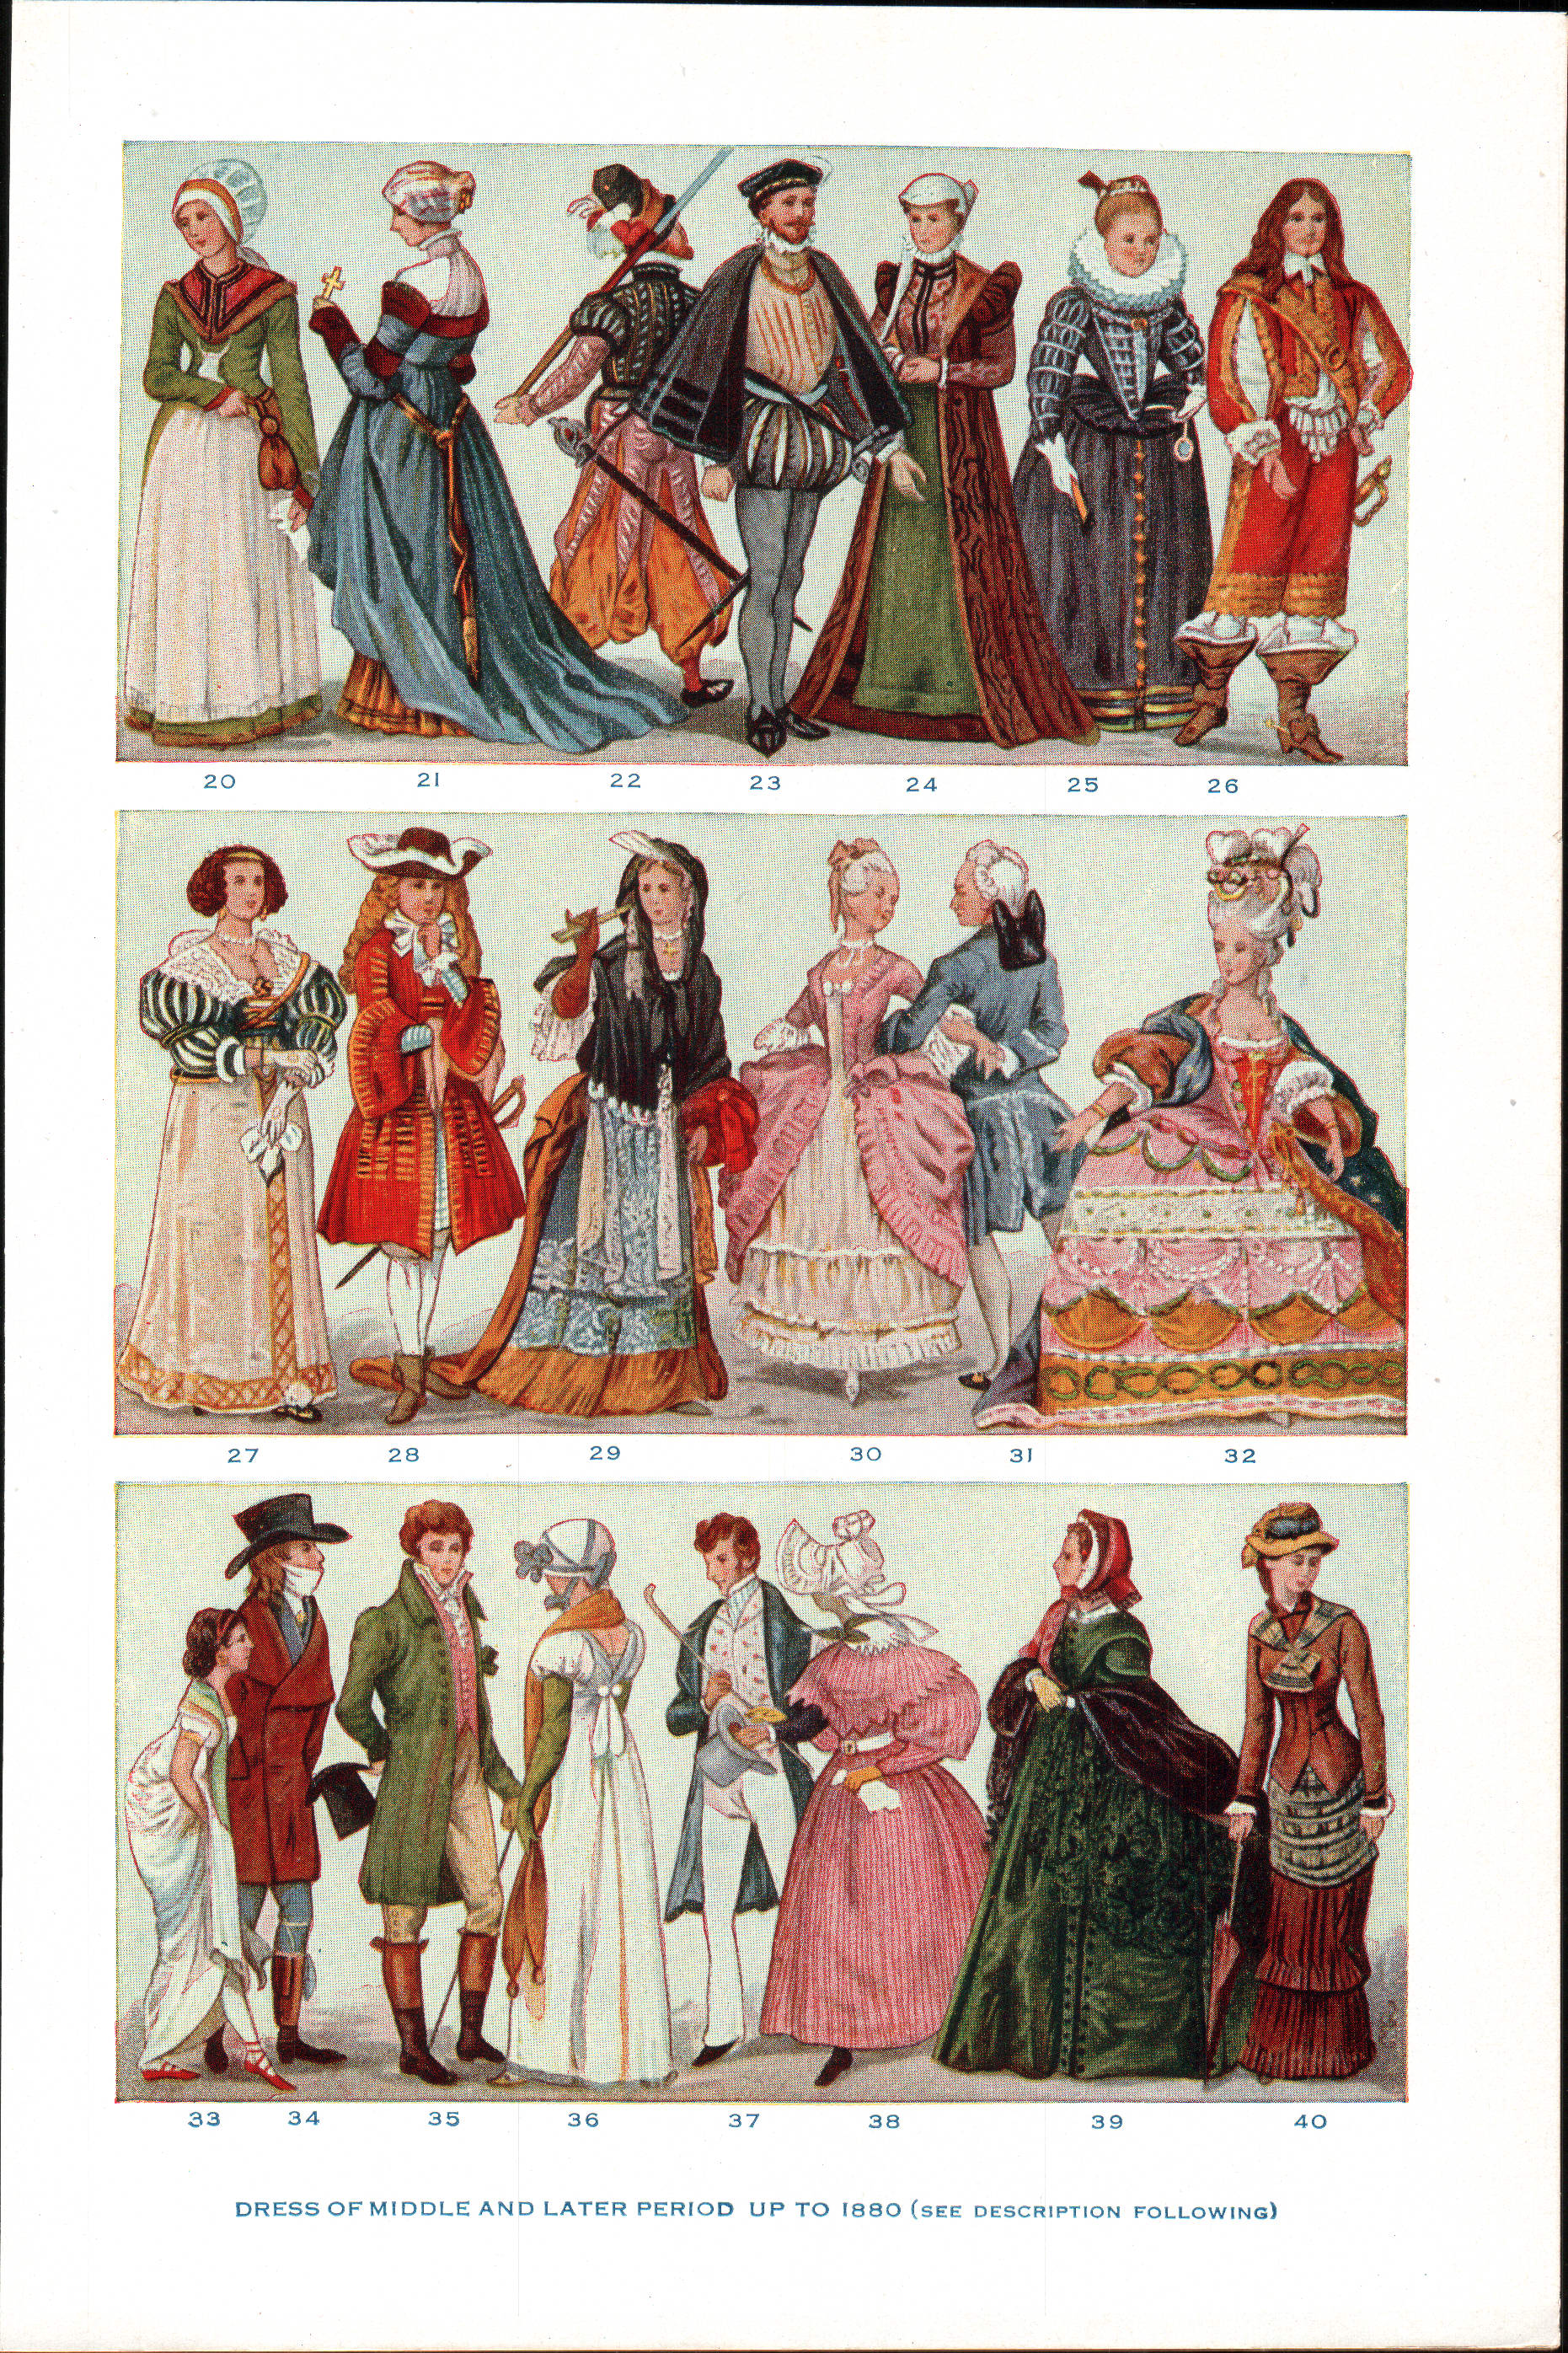 History of Dresses of Fashion